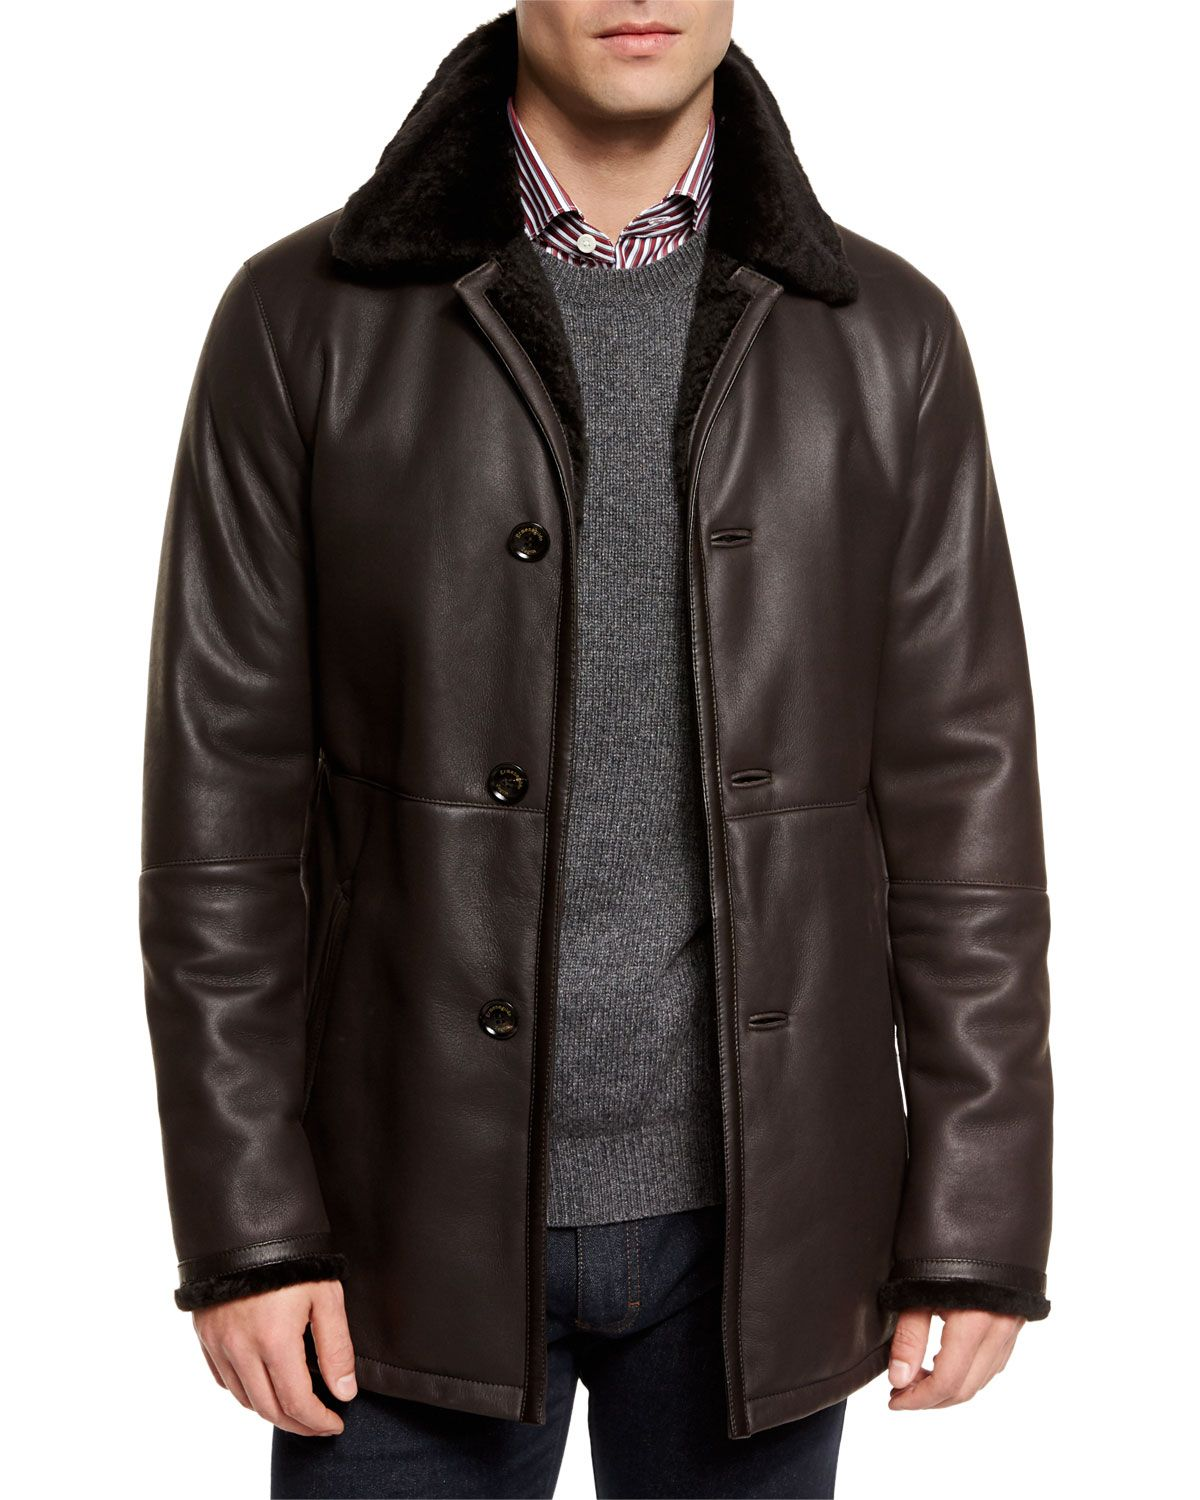 6f78aef1 Leather Jacket with Shearling Fur-Lined Collar, Brown, Size: 56 ...